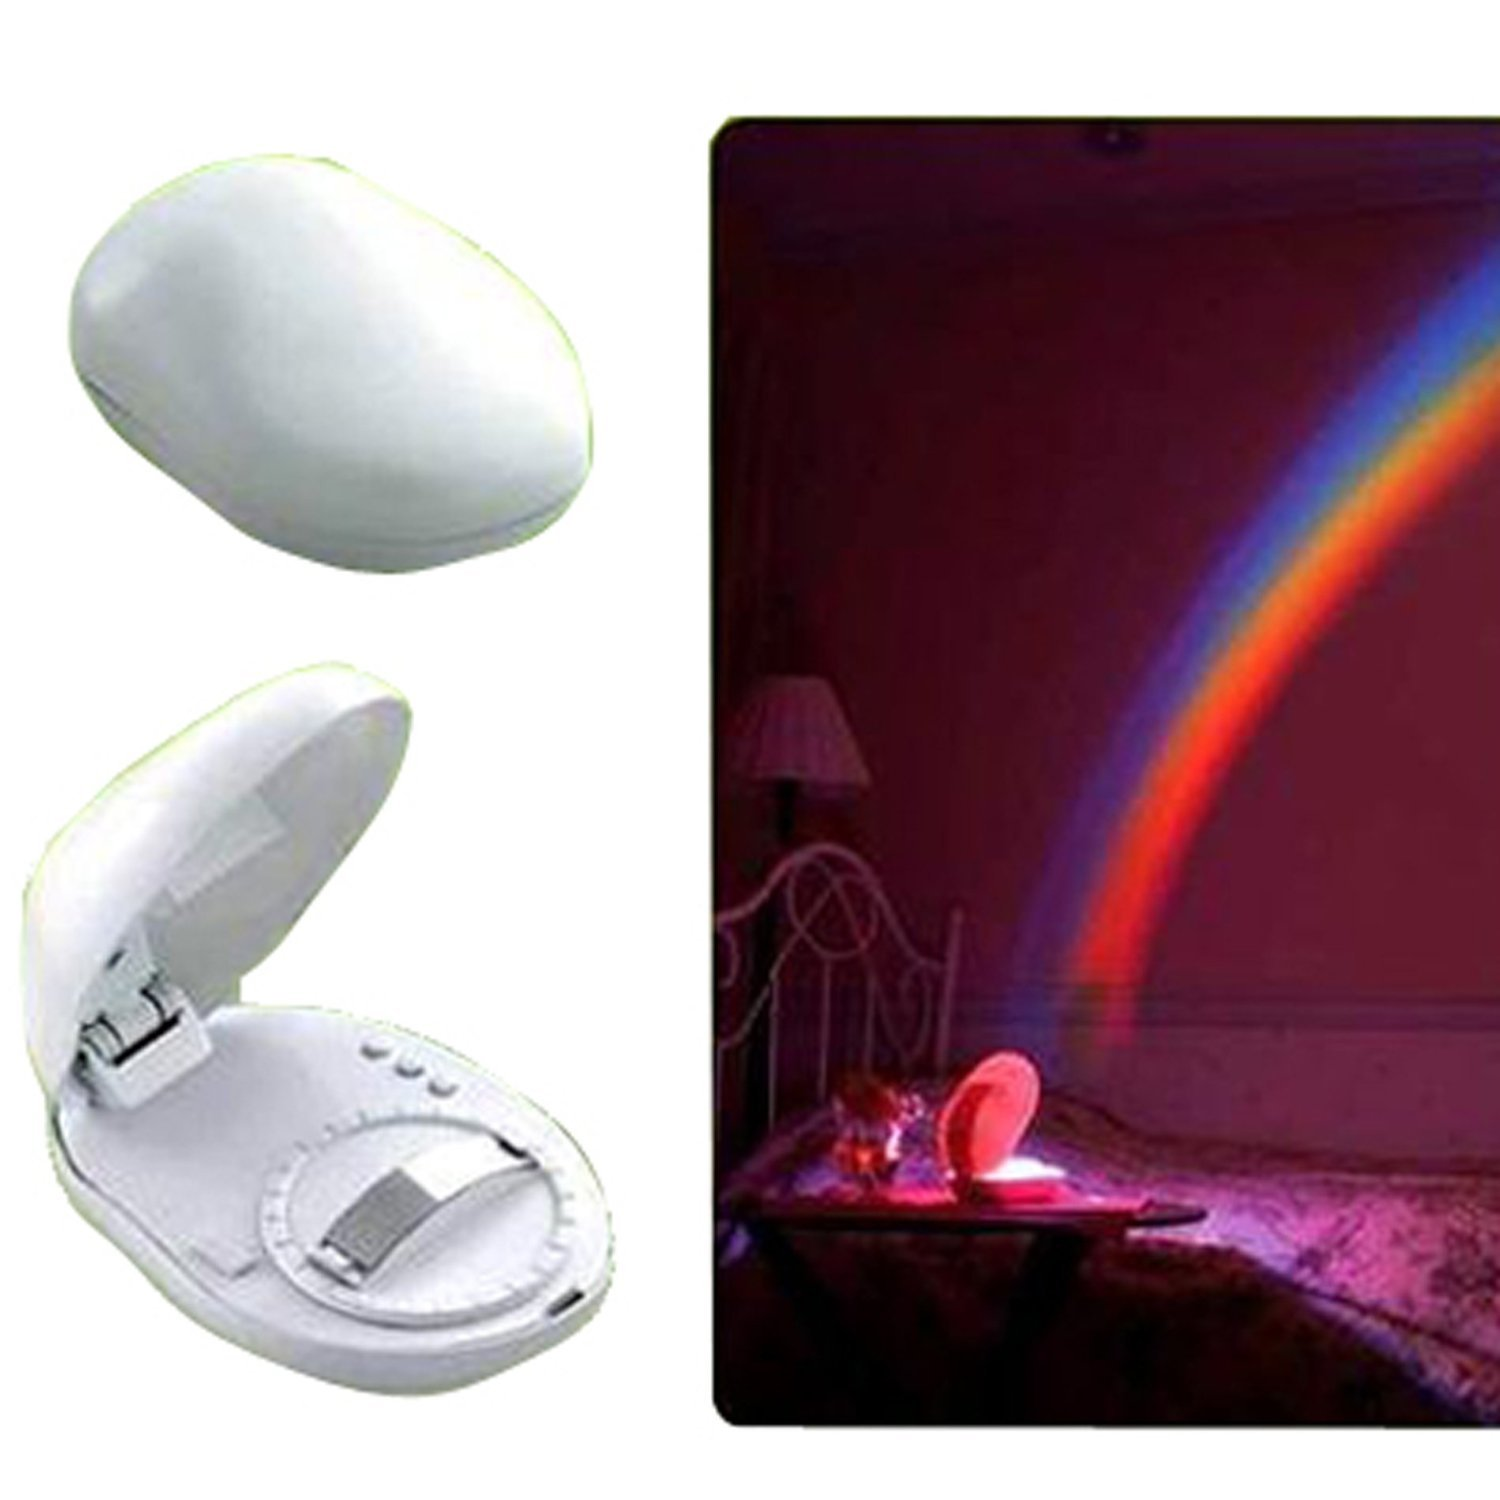 LED Rainbow Projector Room Night Light W/3 Display Mode   Rainbow Over My  Bedroom   Amazon.com